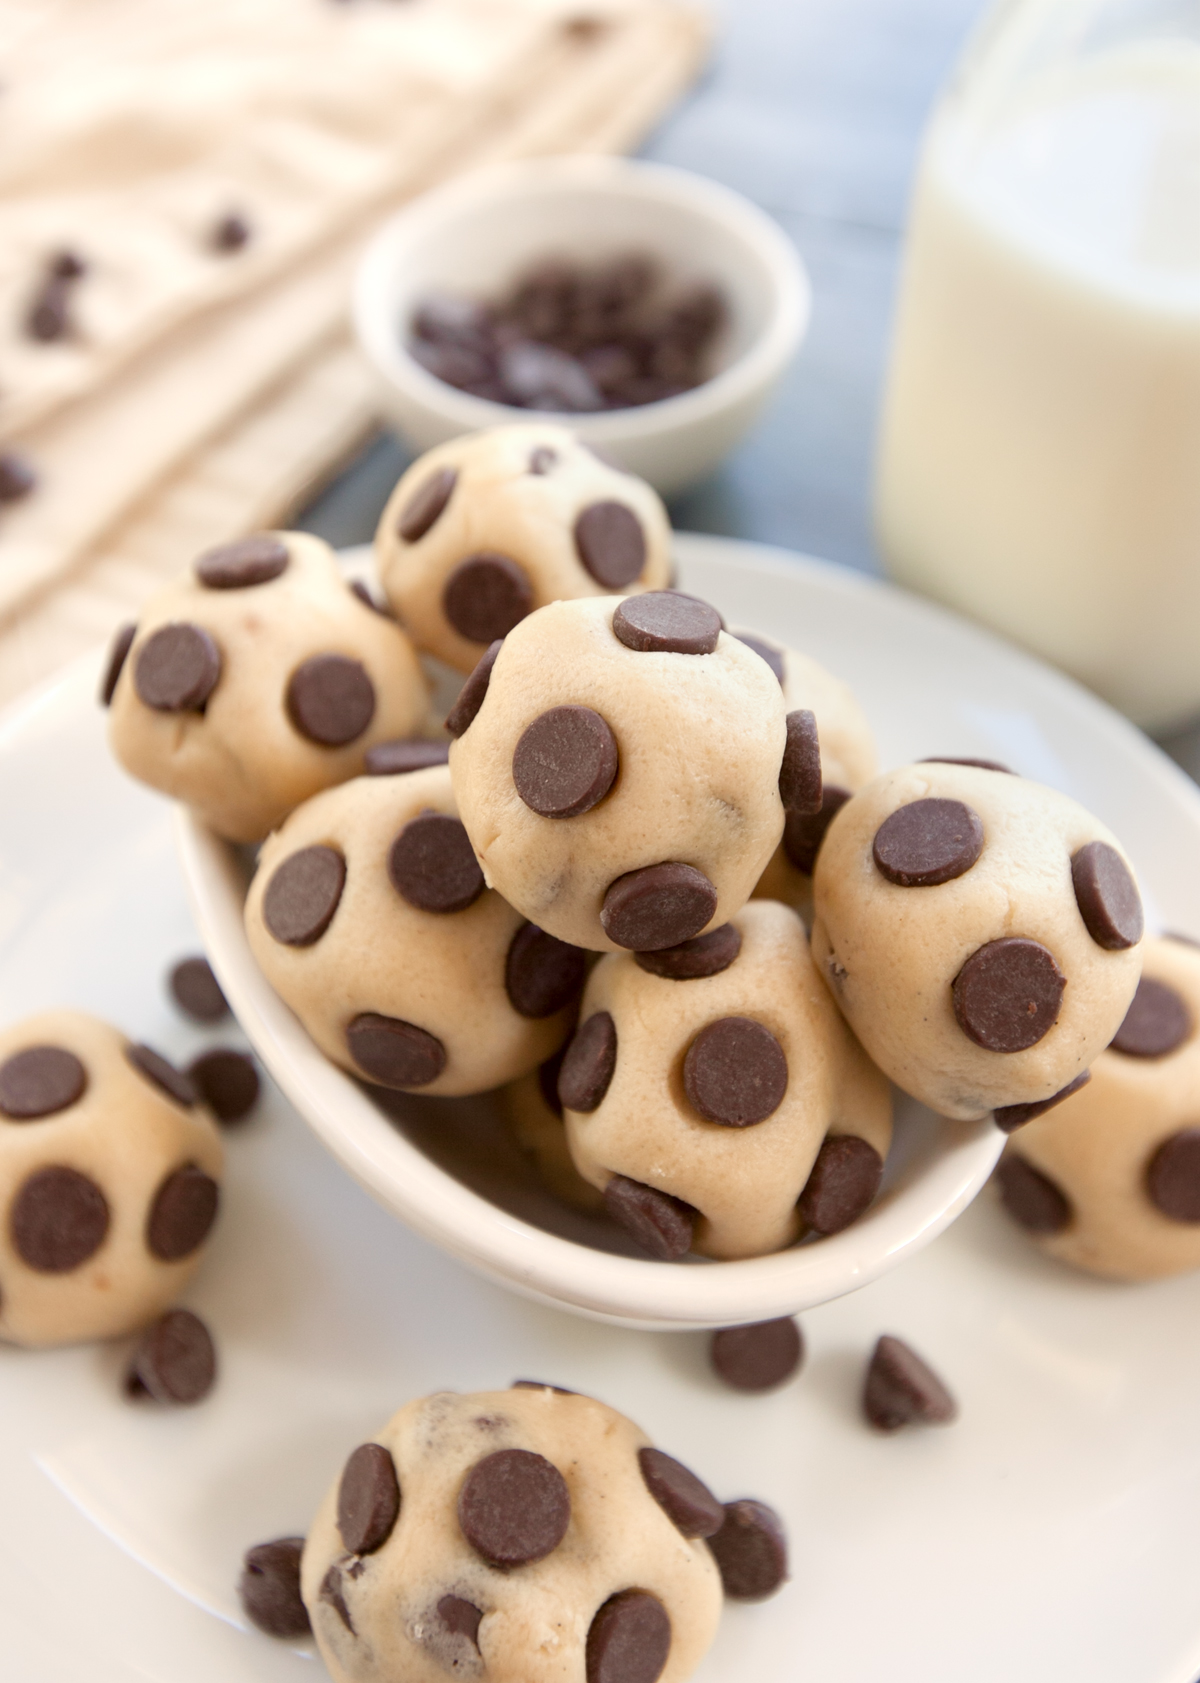 An overhead view of a bowl of cookie dough bites with chocolate chips